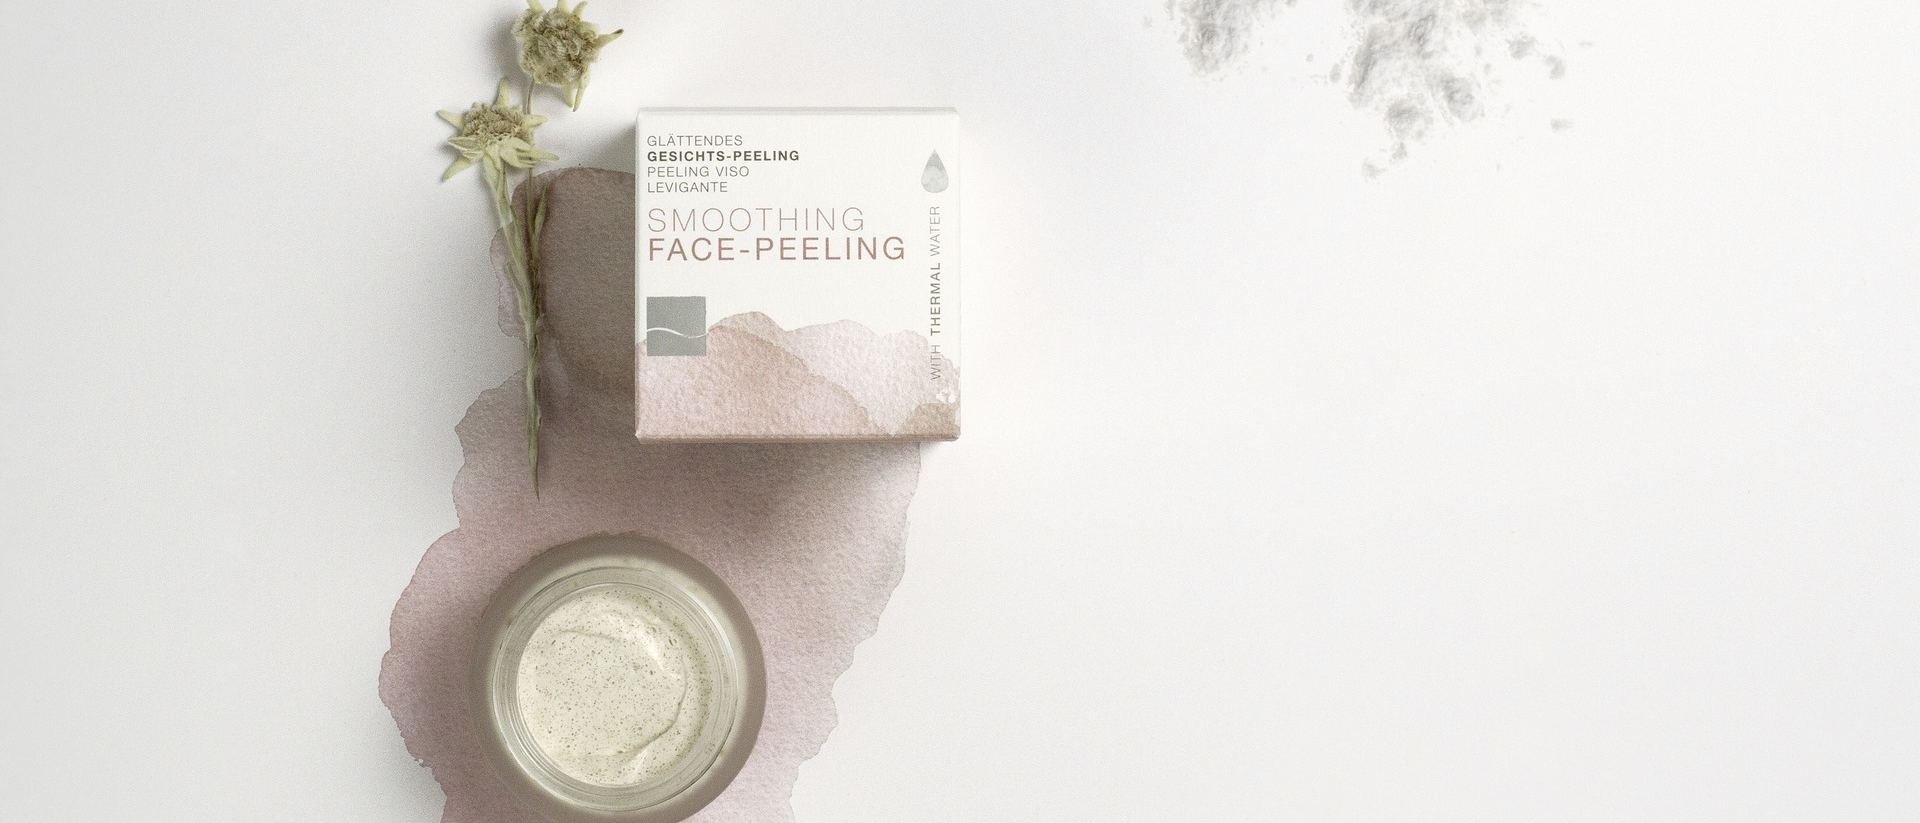 NEW! Smoothing Face-Peeling